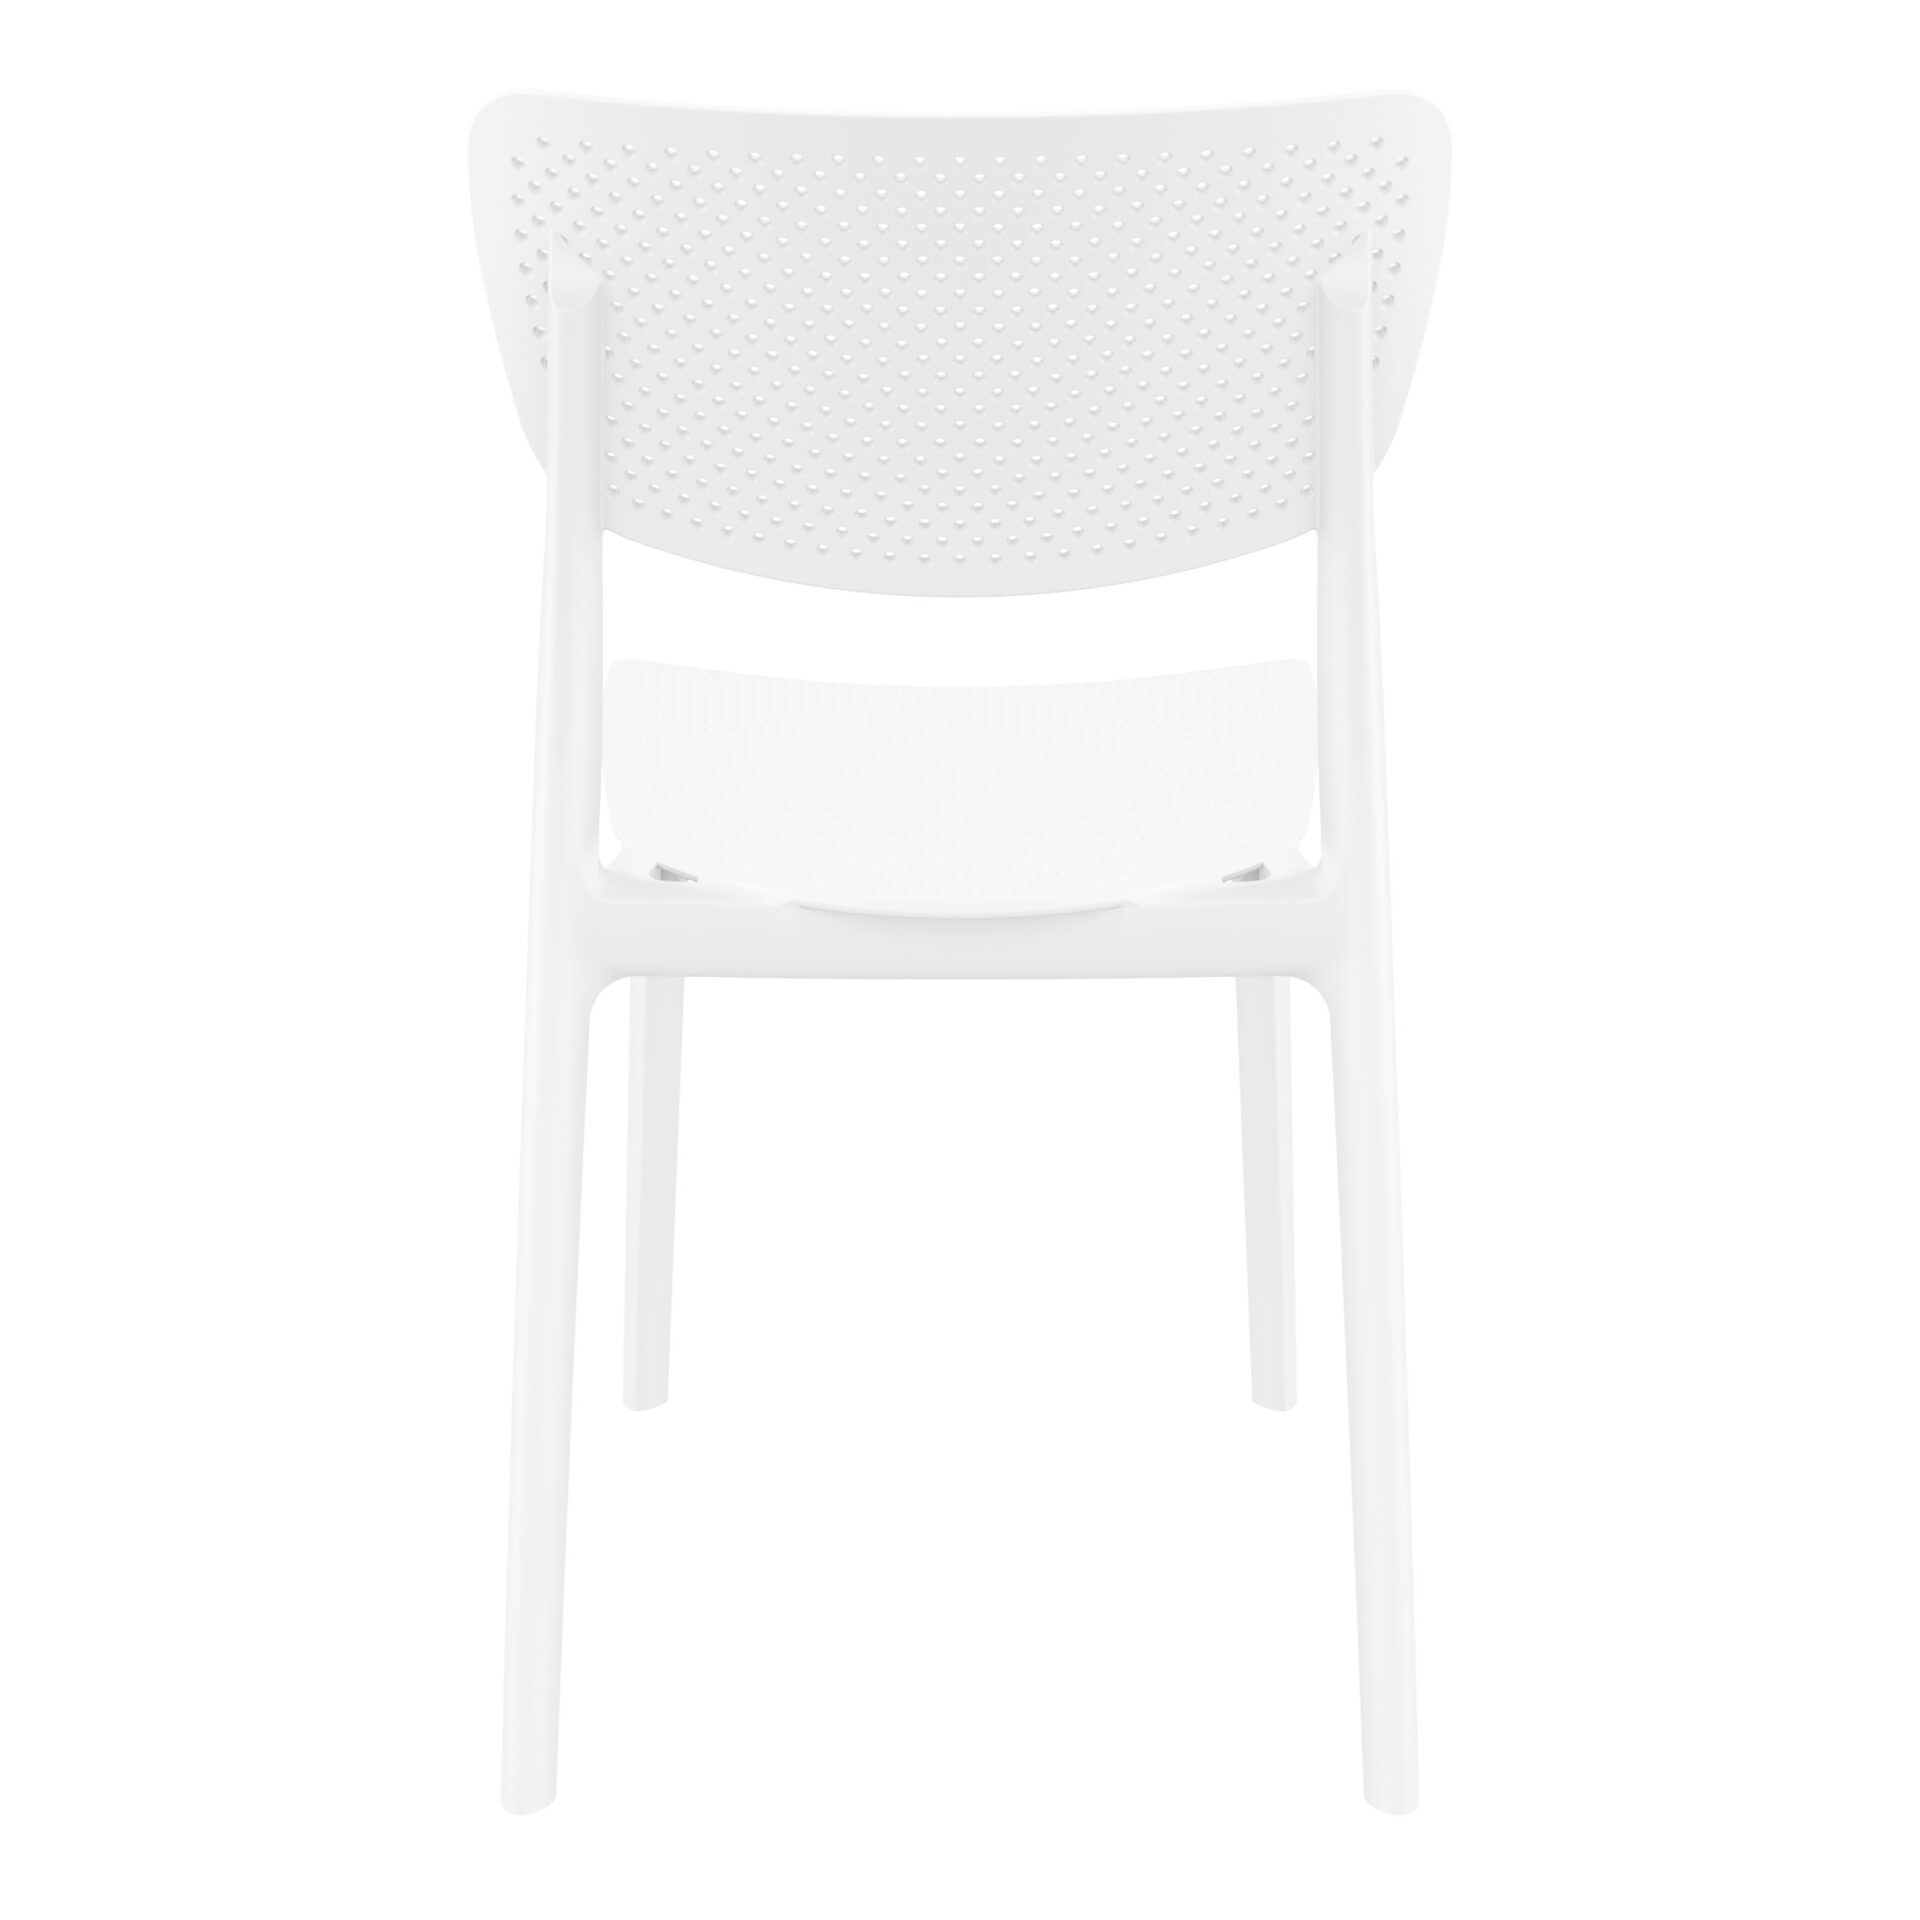 polypropylene hospitality seating lucy chair white back